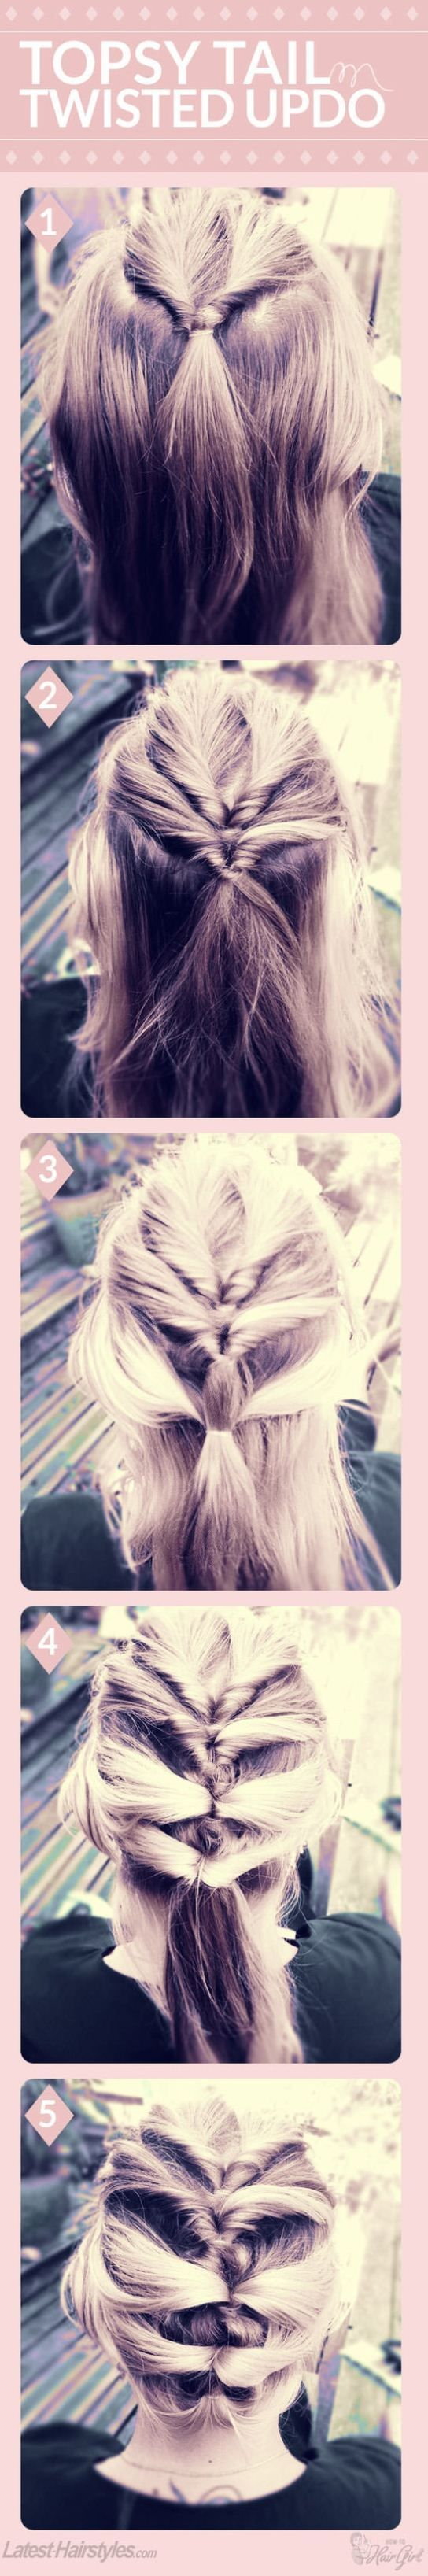 Not sure if my hair will be long enough for this, but it looks pretty cool!